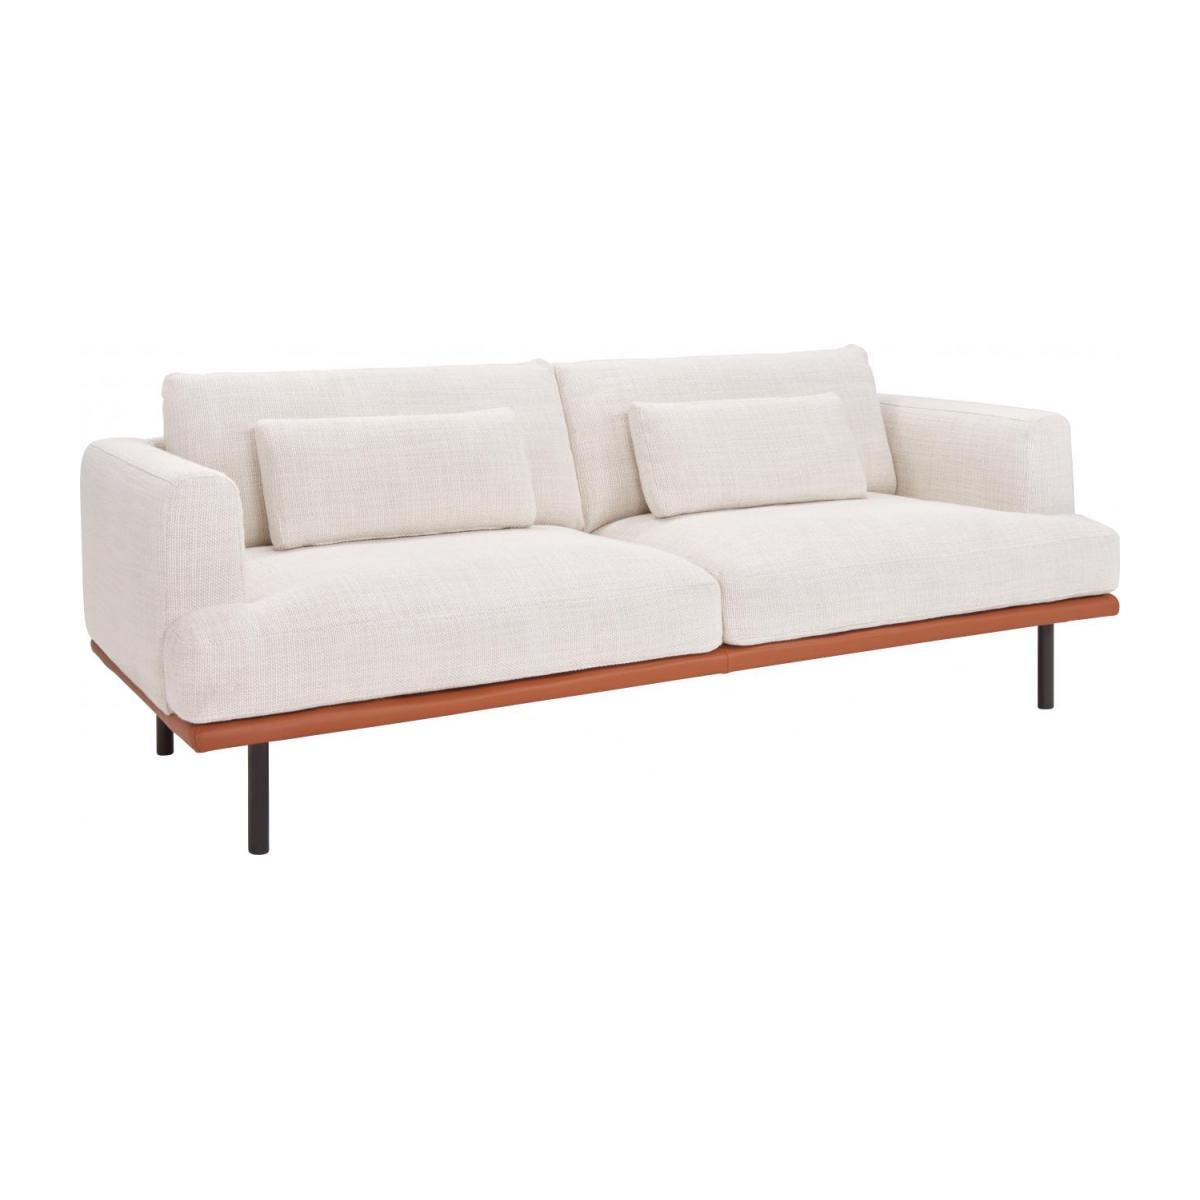 Habitat Sofa Baci 2 Seater Sofa In Fasoli Fabric Snow White With Base In Brown Leather